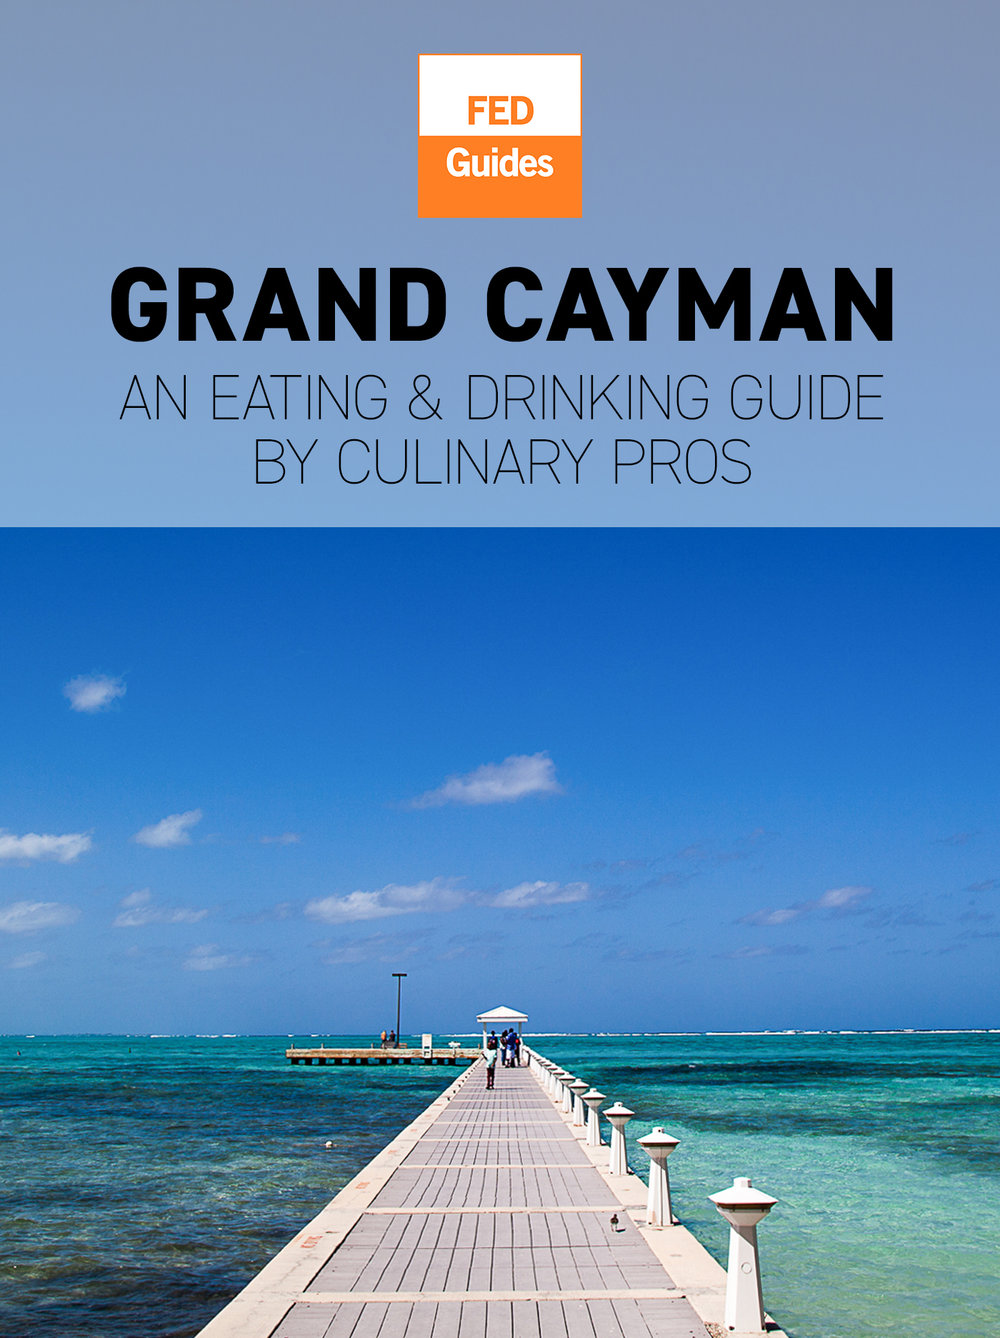 Caribbean_GrandCayman_eBook_Apple_Cover_v1.4.jpg